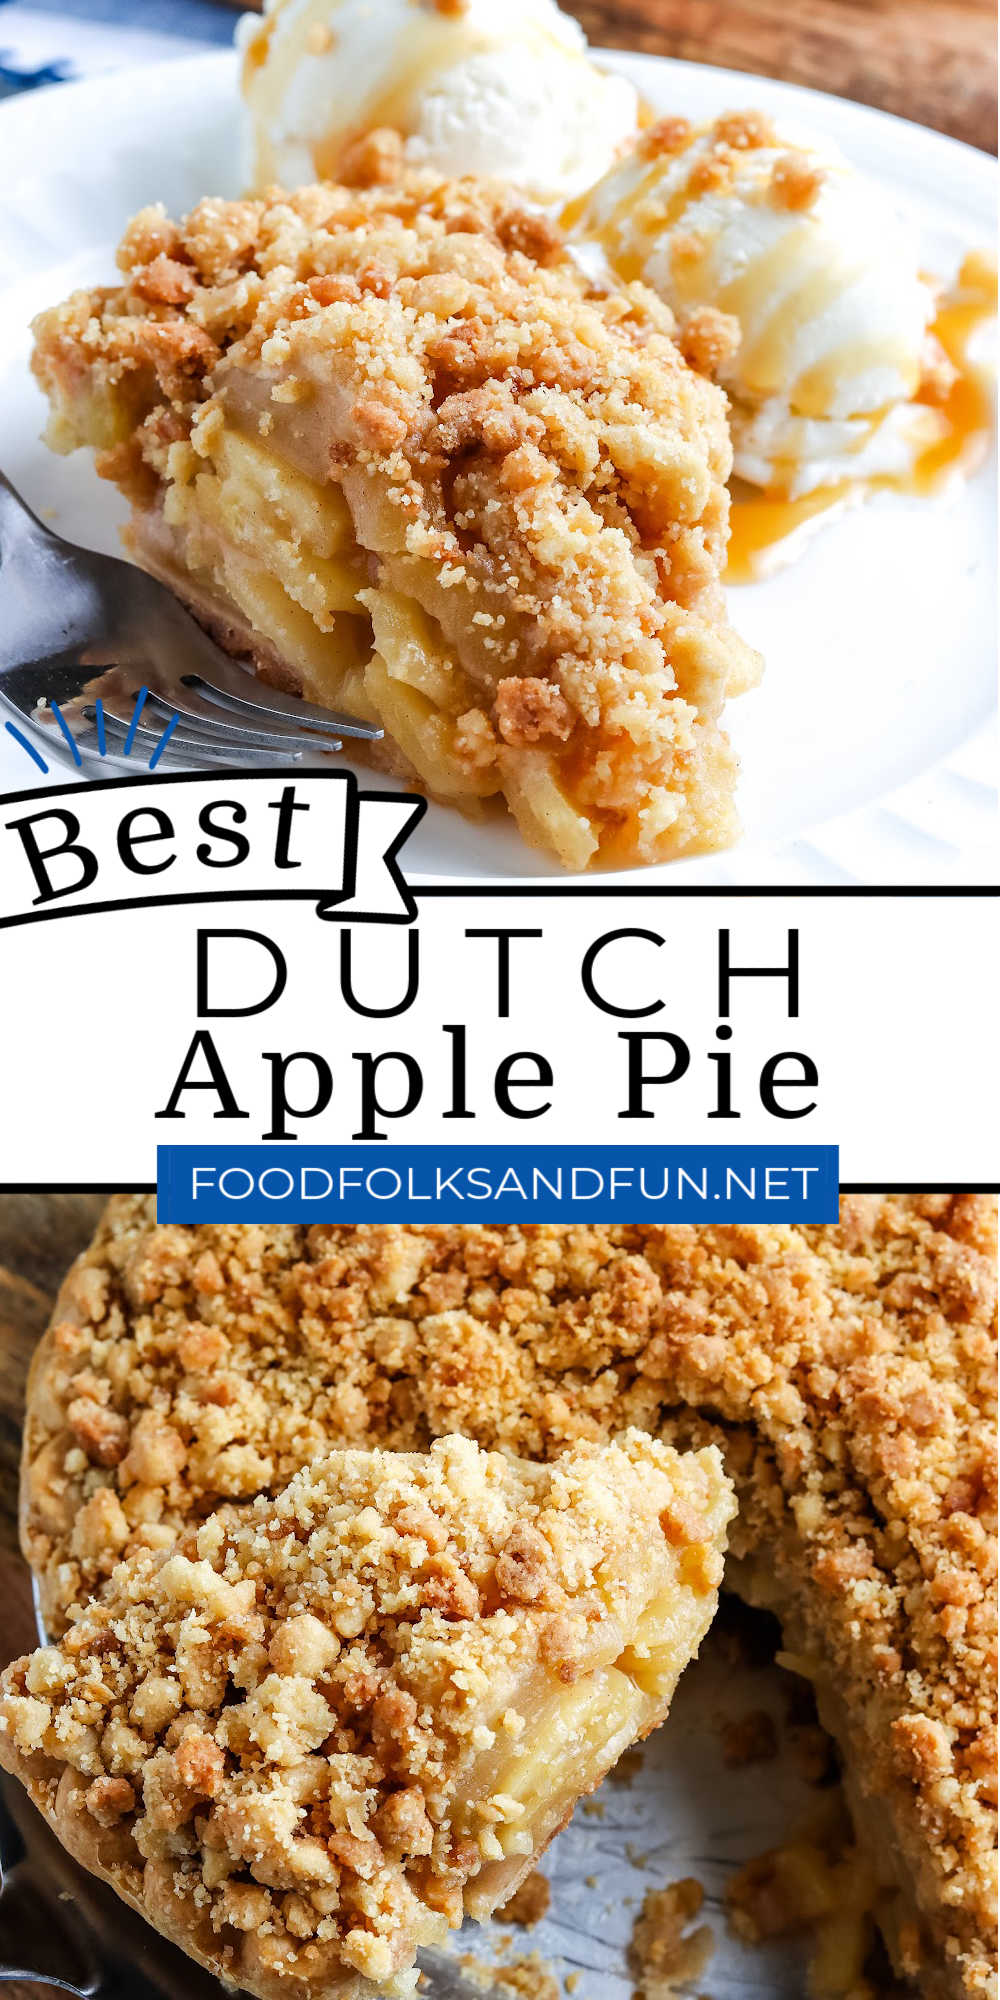 This Semi-Homemade Dutch Apple Pie recipe has a flaky bottom crust, a spiced homemade apple pie filling, and a generous buttery crumble topping. via @foodfolksandfun